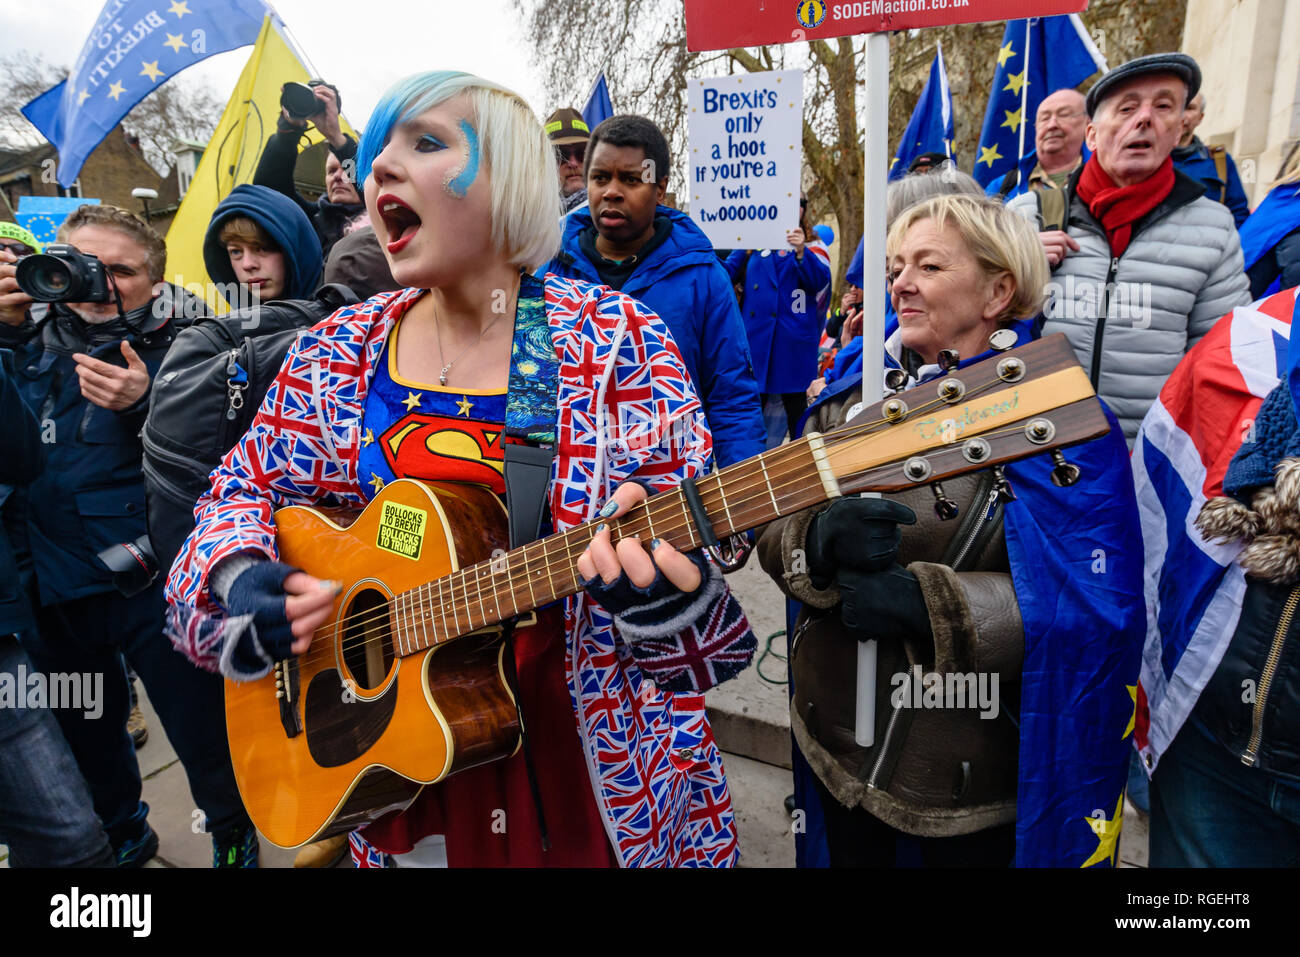 London, UK. 29th January 2019. EU Supergirl Madeleina Kay sings despite the attempts of Brexiteers to shout and drown her voice. On the day of more Brexit votes, protests around parliament continue, with Remainers waving EU flags, and Brexiteers holding signs leave means leave. A small group, some wearing yellow jackets came to shout at the Remainers, calling them traitors. Away from this there were a few more reasoned arguments, and others making their points with various costumes. Movement for Justice on Parliament Square called Brexit racist. There was a large police presence. Peter Marshal - Stock Image